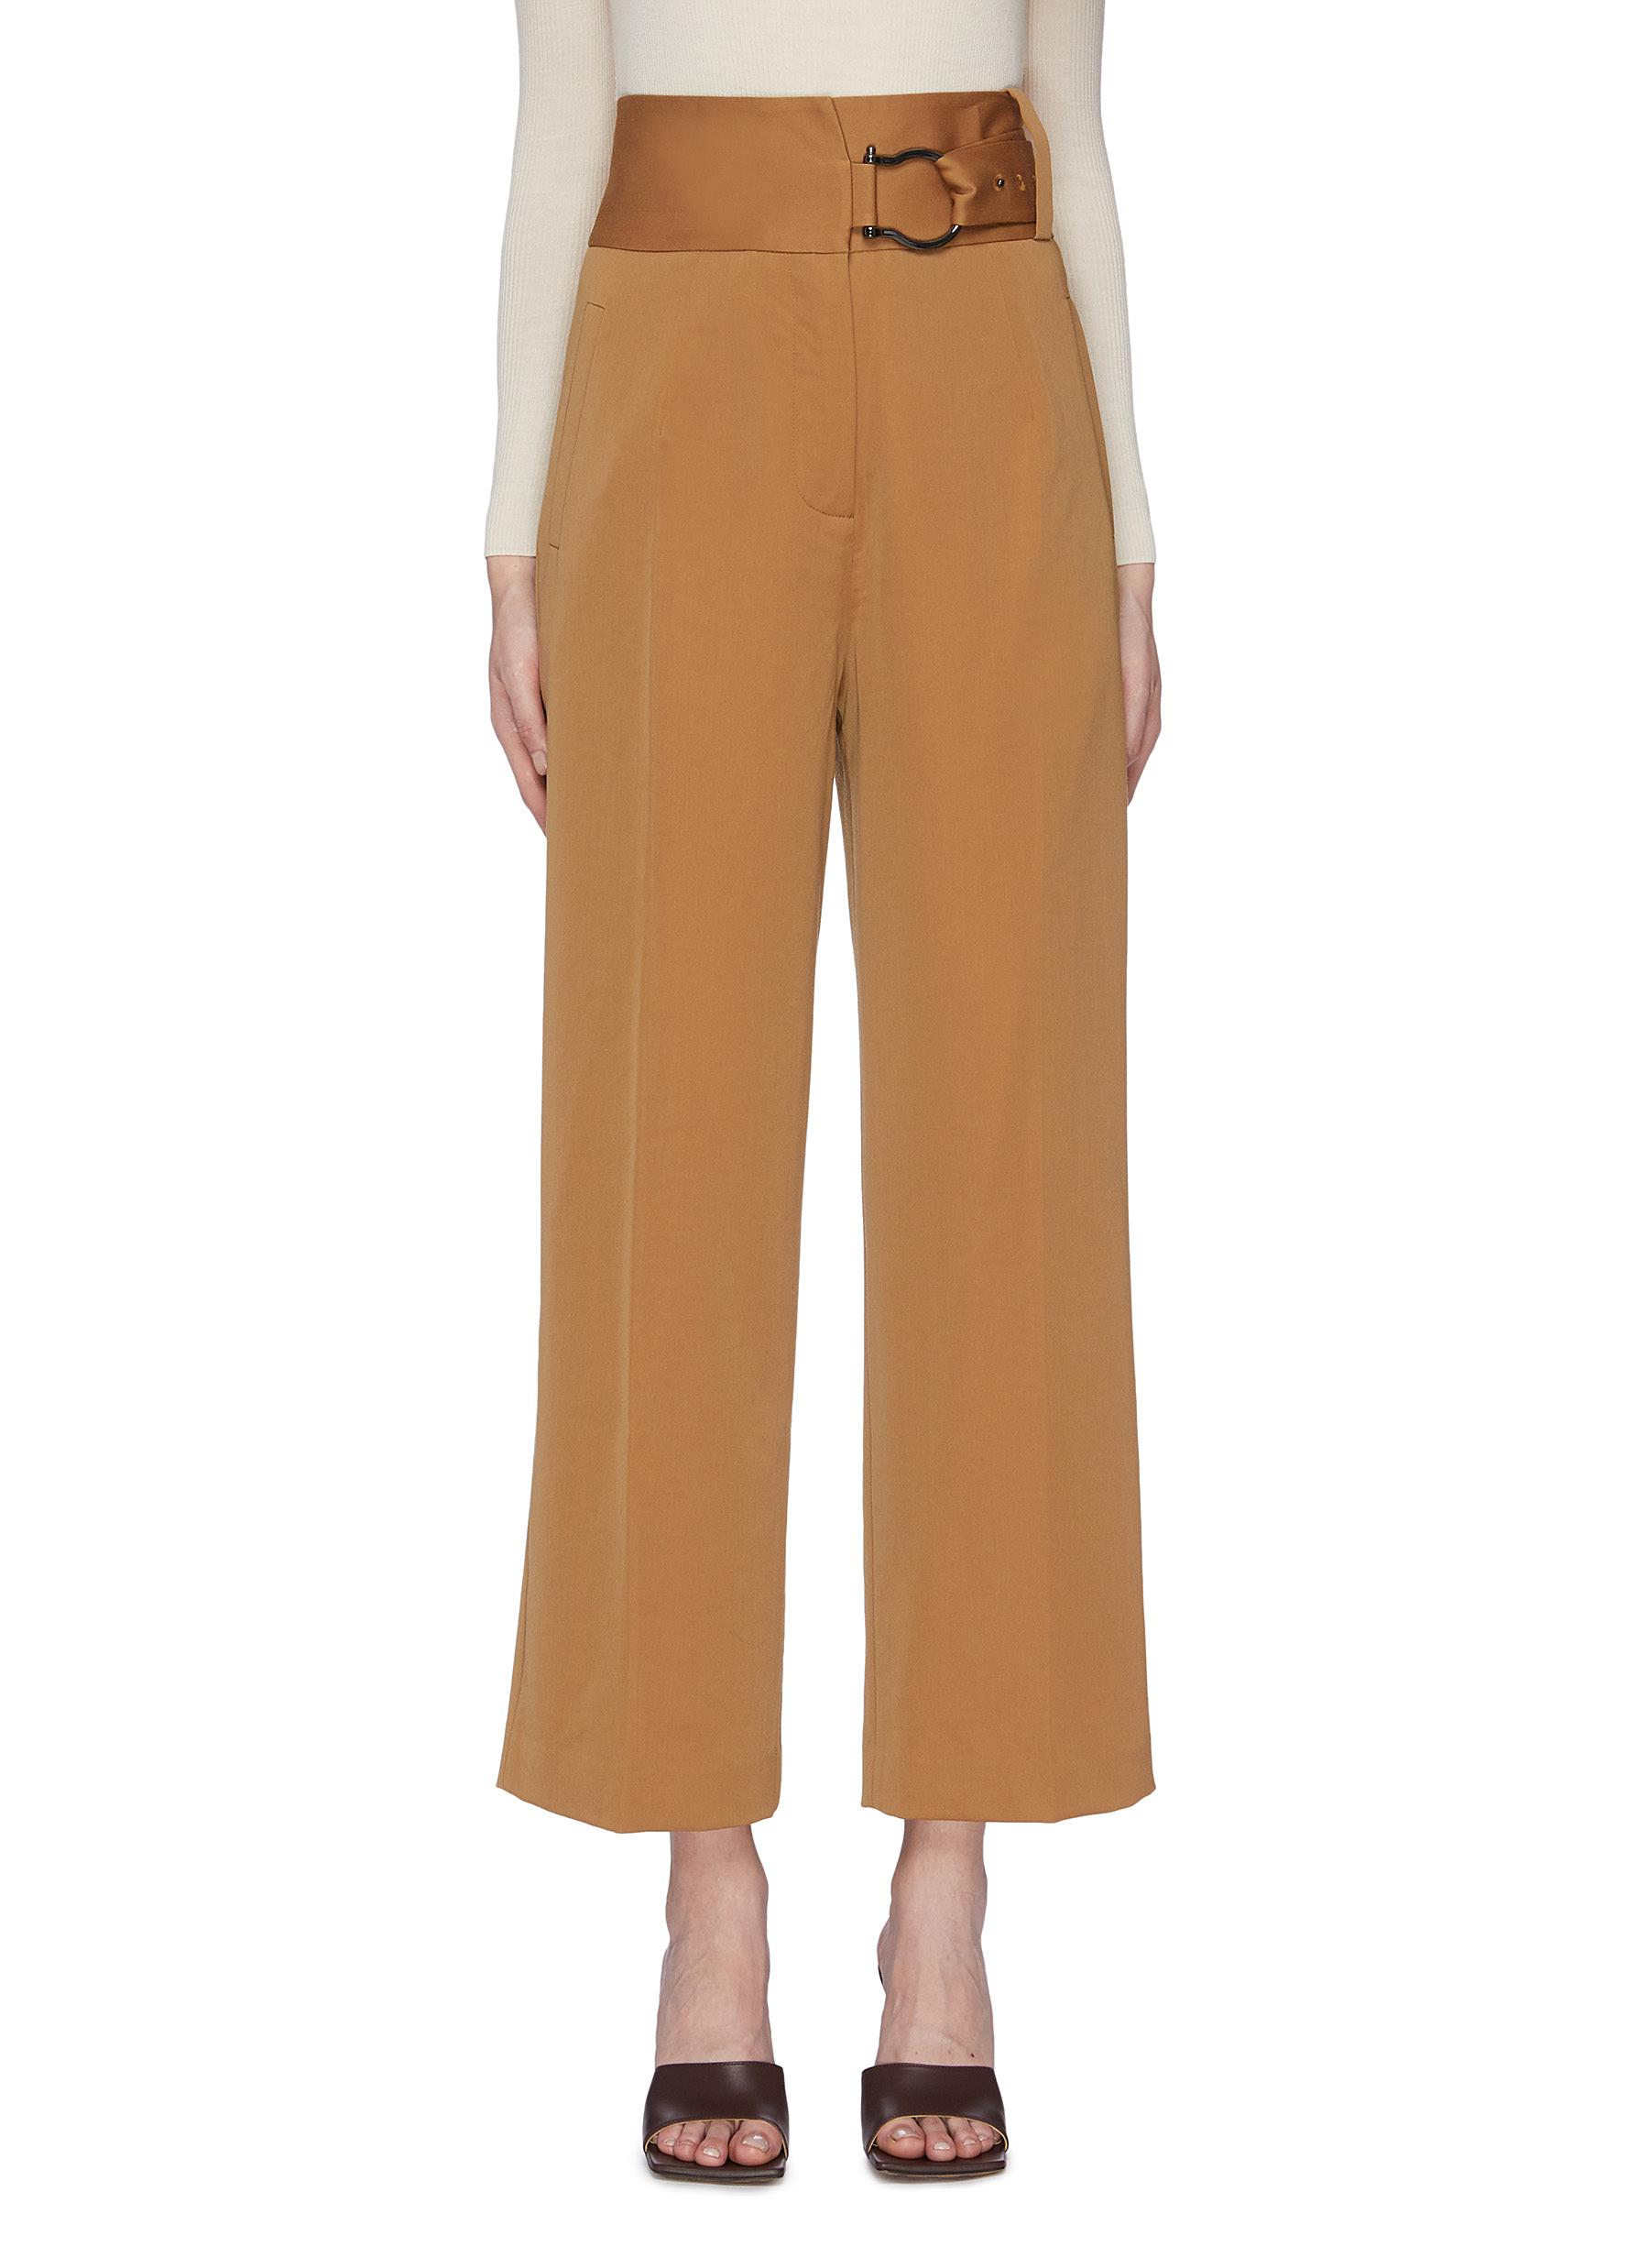 Belted wide leg pants by Equil